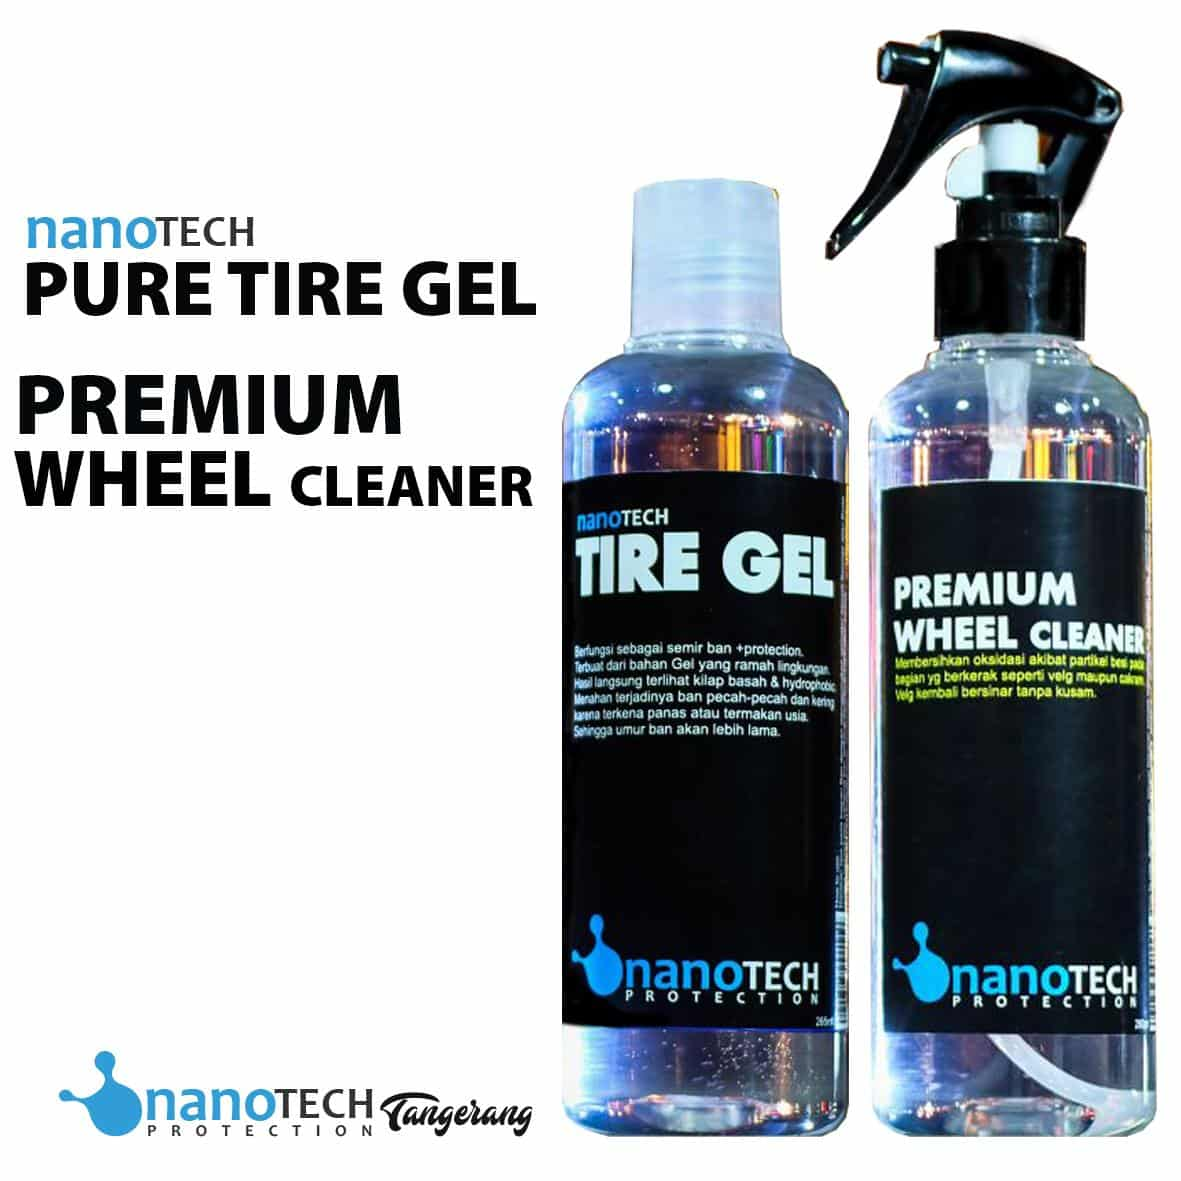 4. Nanotech Pure Tire Gel